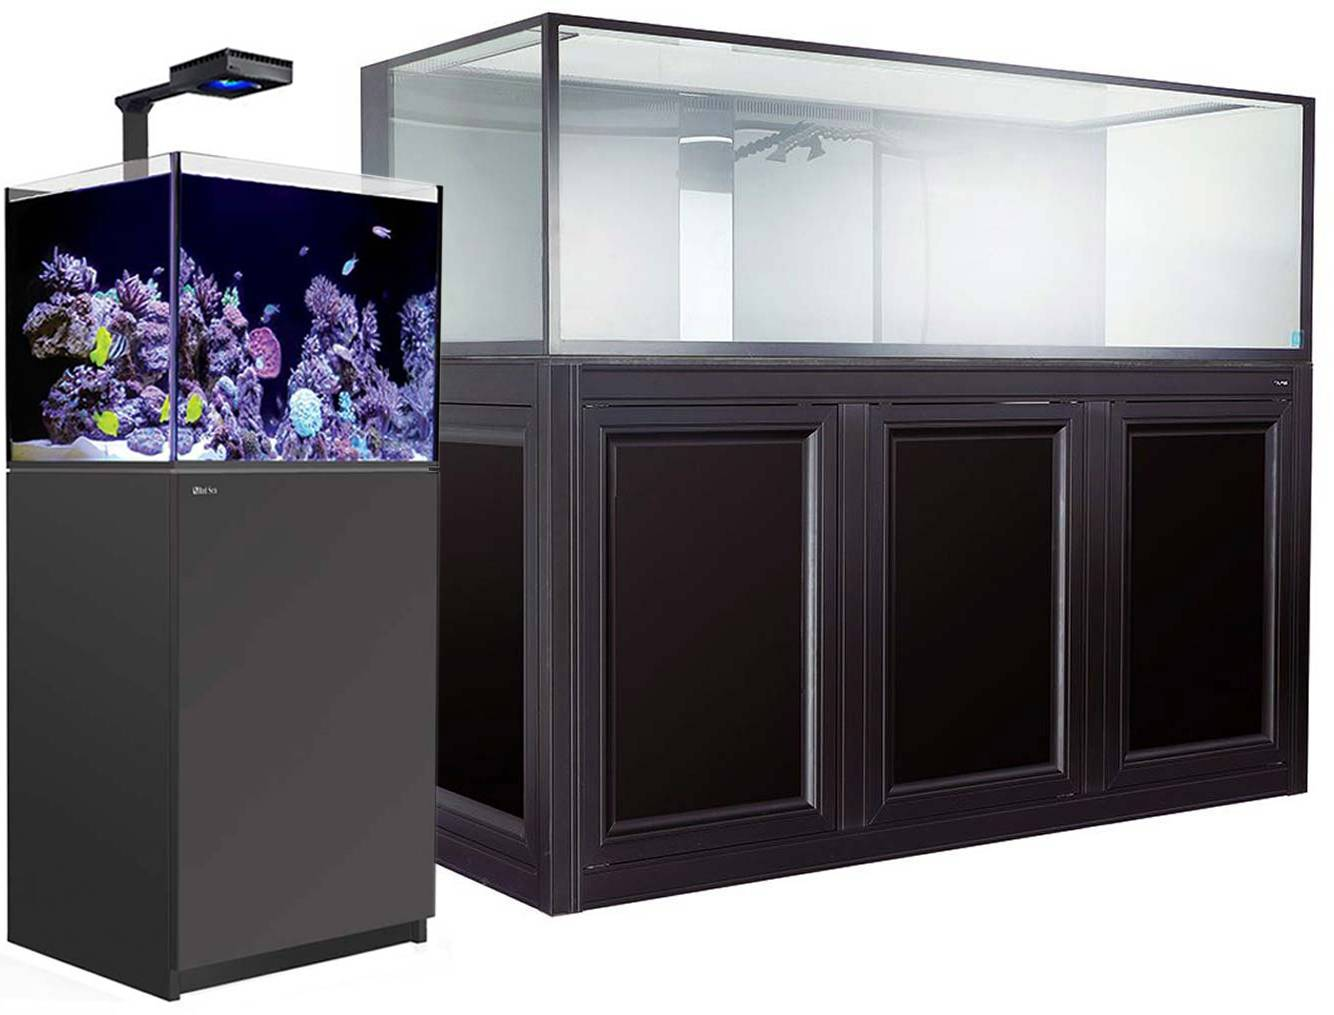 Examples of aquariums suitable for wrasses